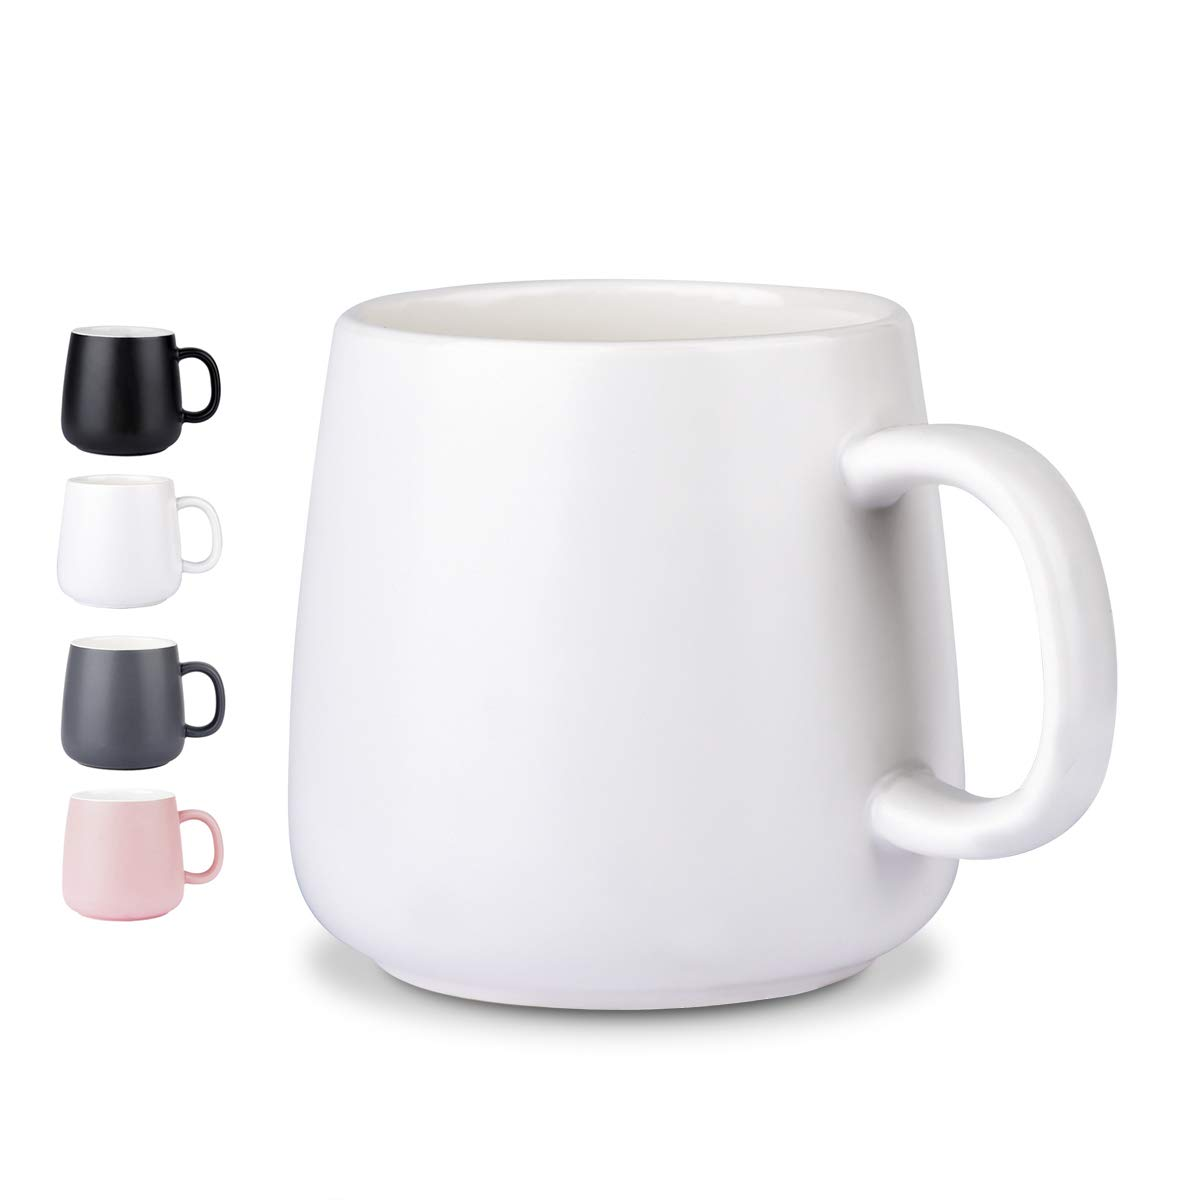 NEWANOVI Ceramic Cup Smooth Frosted Porcelain Mug, Coffee